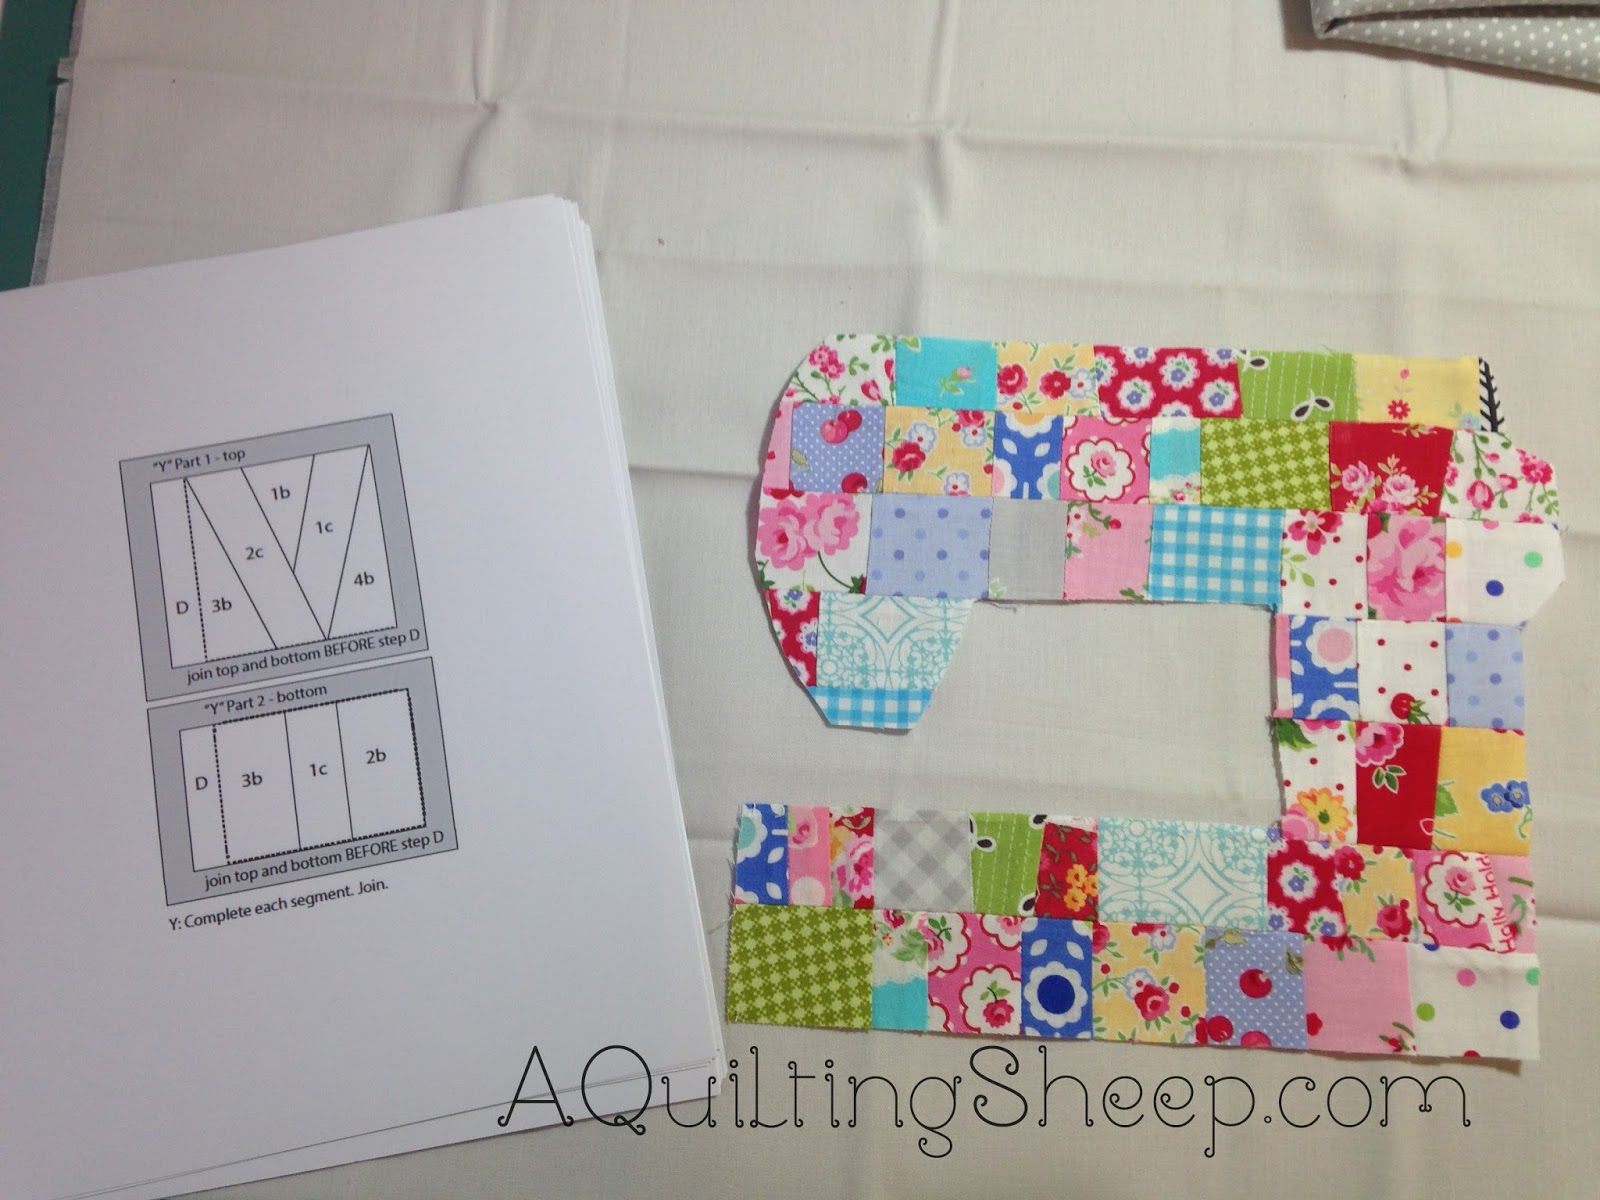 A Quilting Sheep: Paper Piecing mood